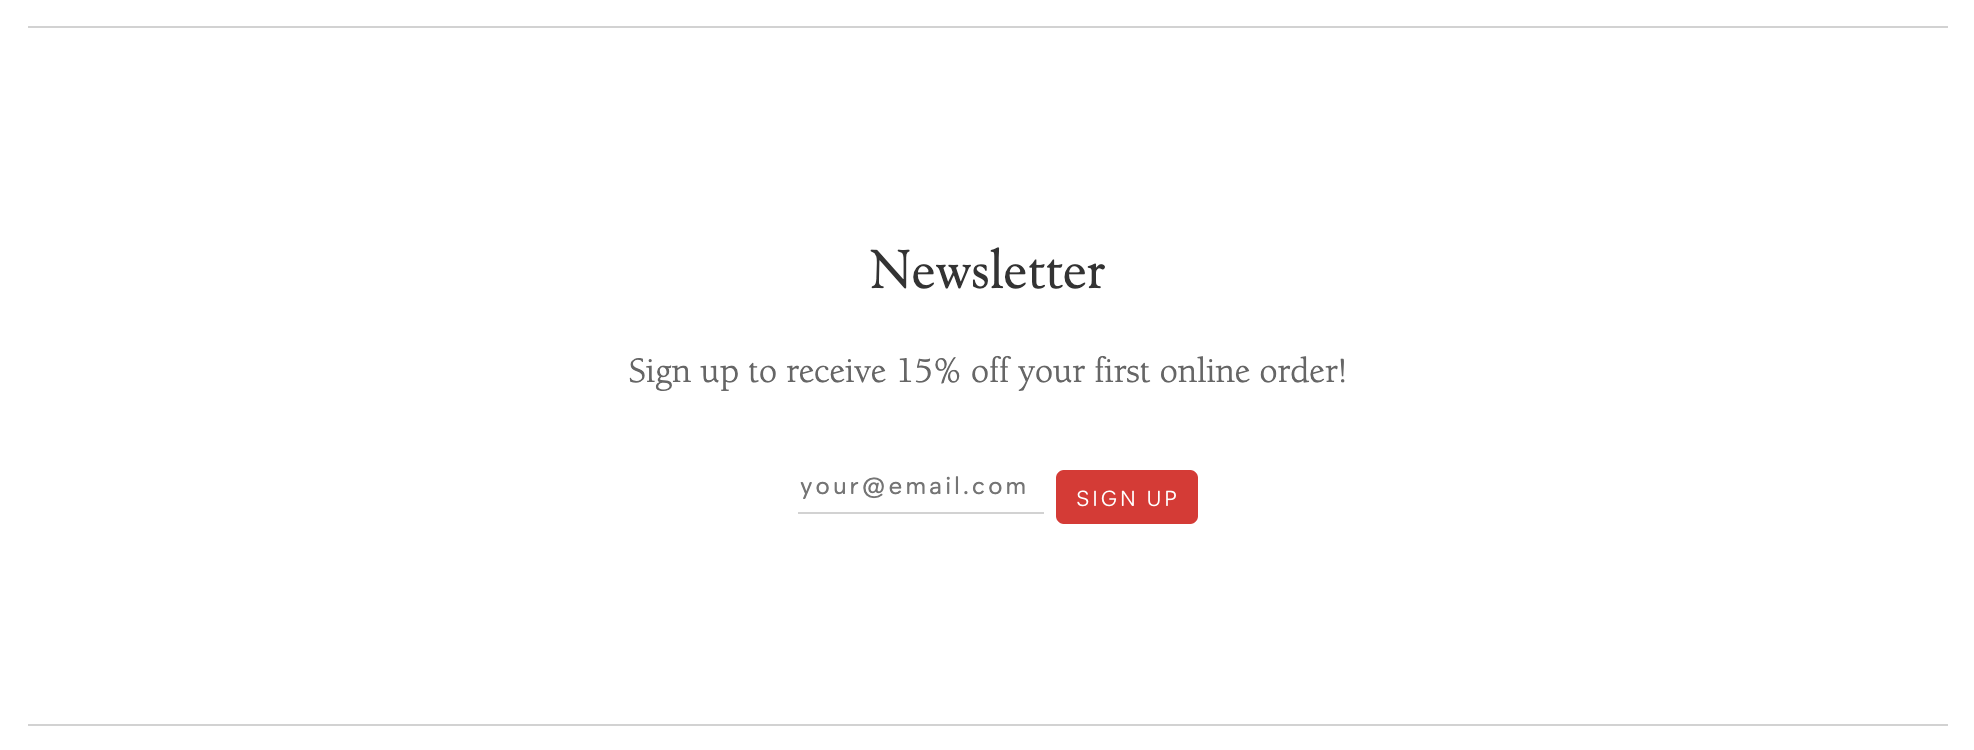 Newsletter_section_in_Editions_light_demo.png